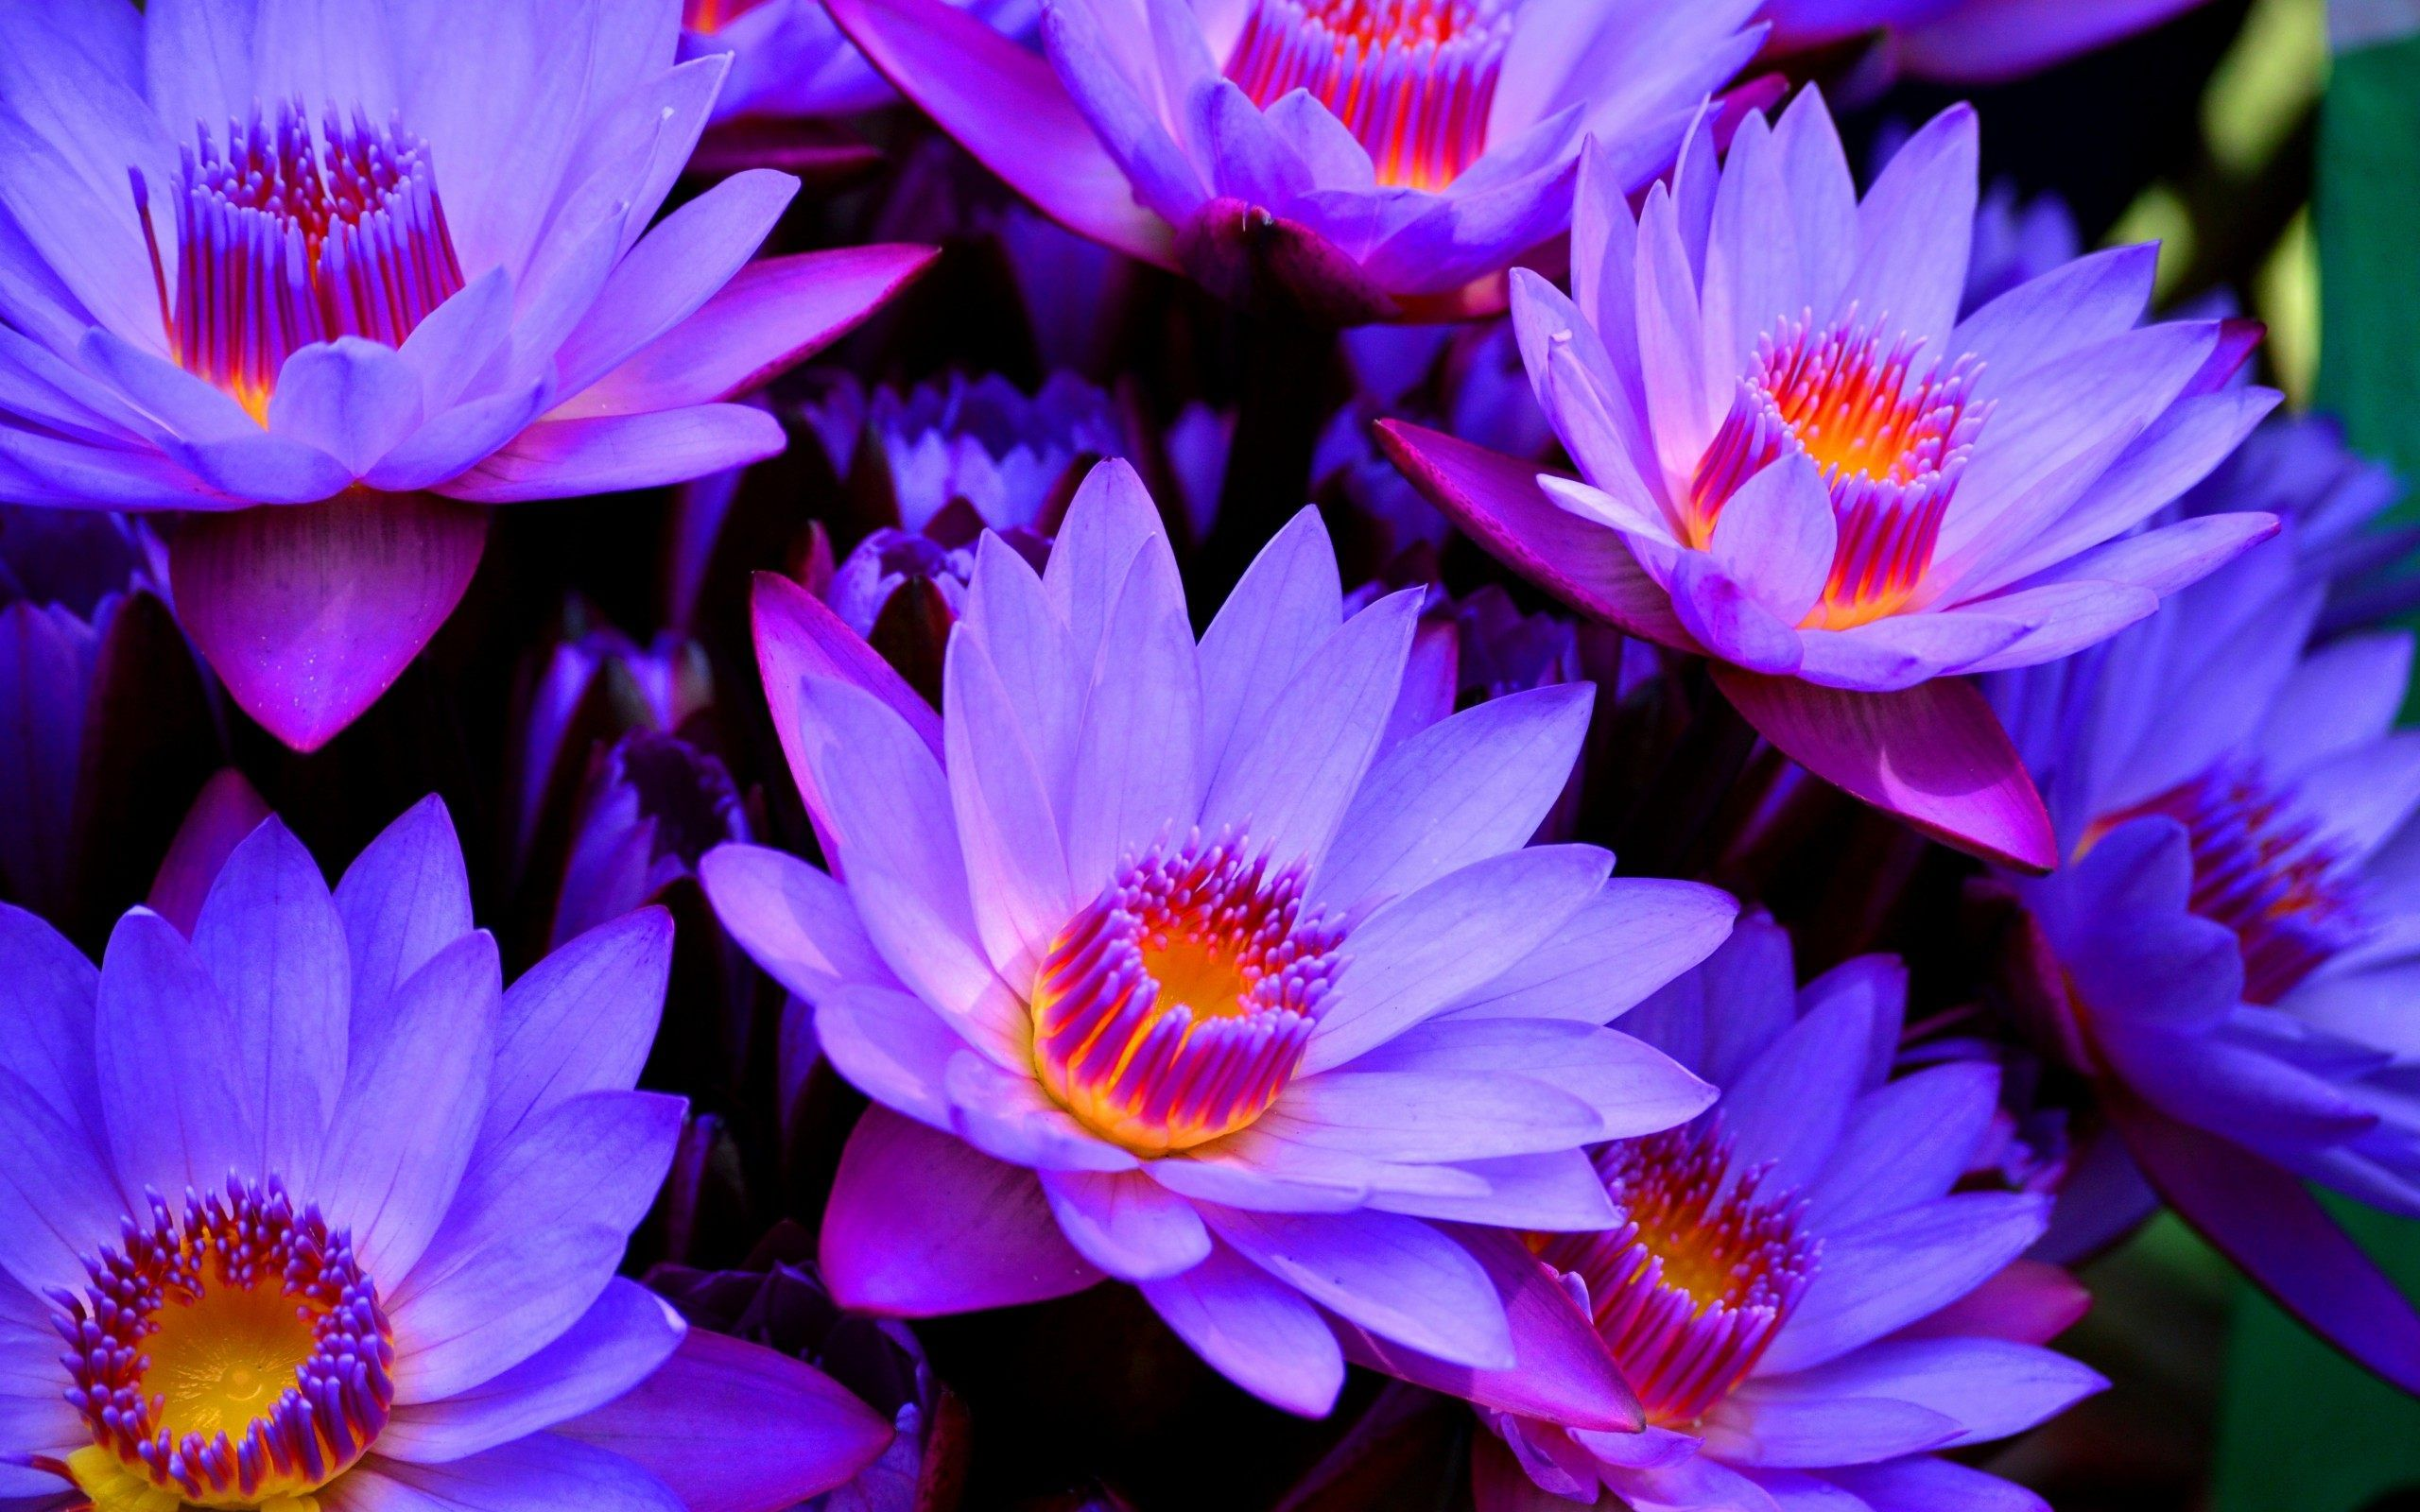 Purple lotus flower wallpaper picture with high definition wallpaper purple lotus flower wallpaper picture with high definition wallpaper 2560x1600 px 47111 kb mightylinksfo